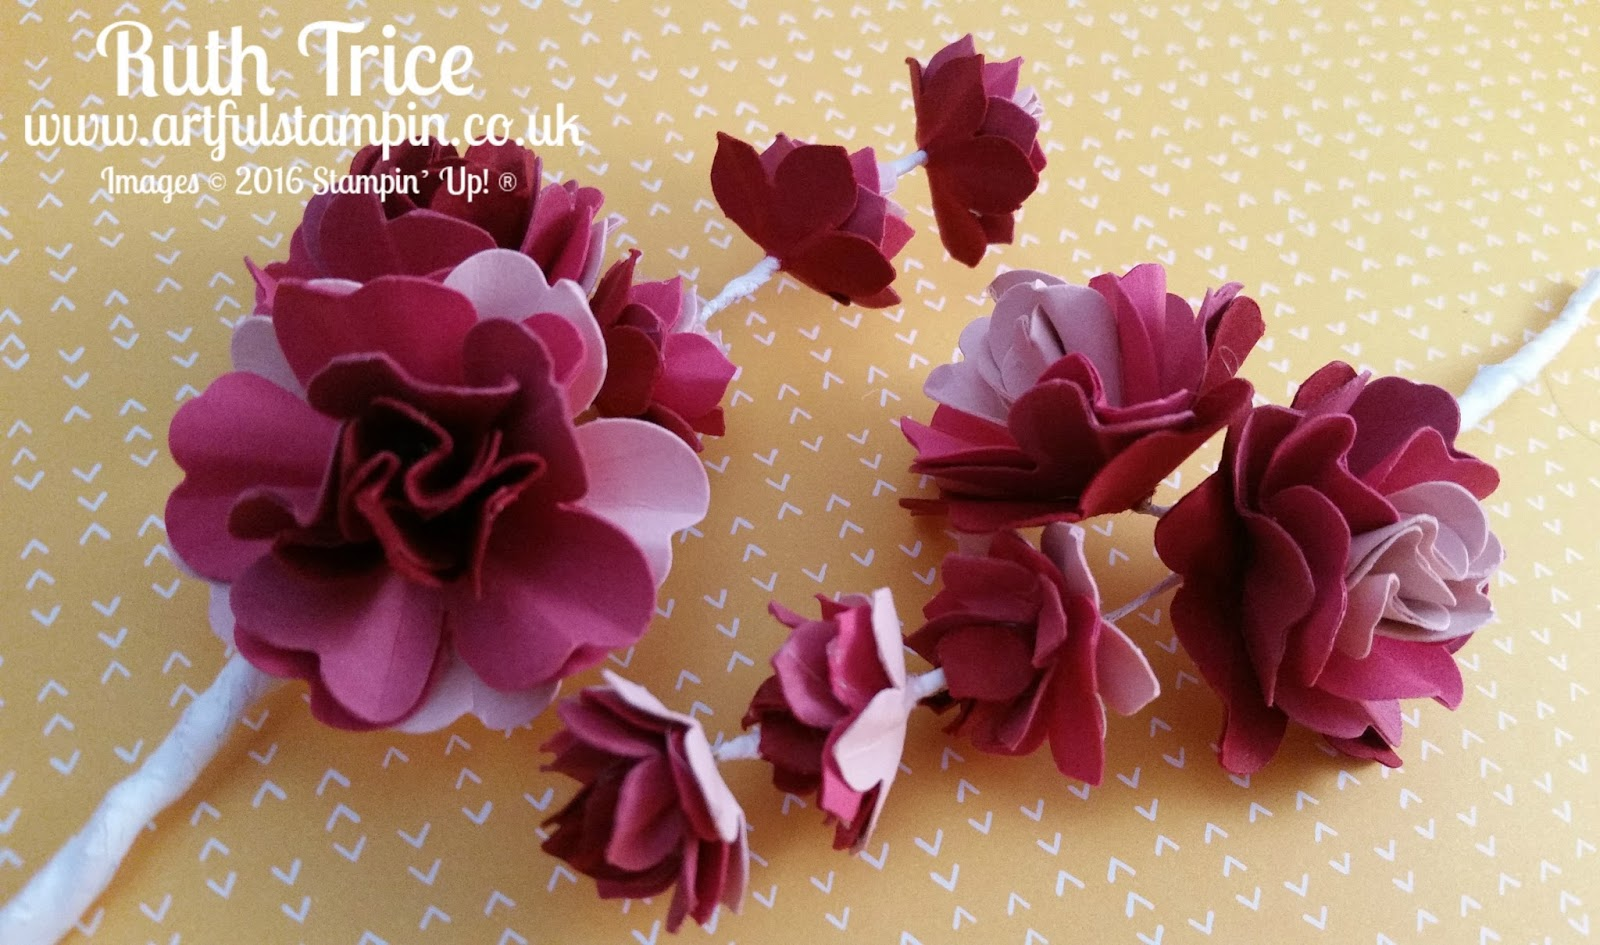 Artful stampin uk independent stampin up demonstrator ruth paper flower corsage tutorial mightylinksfo